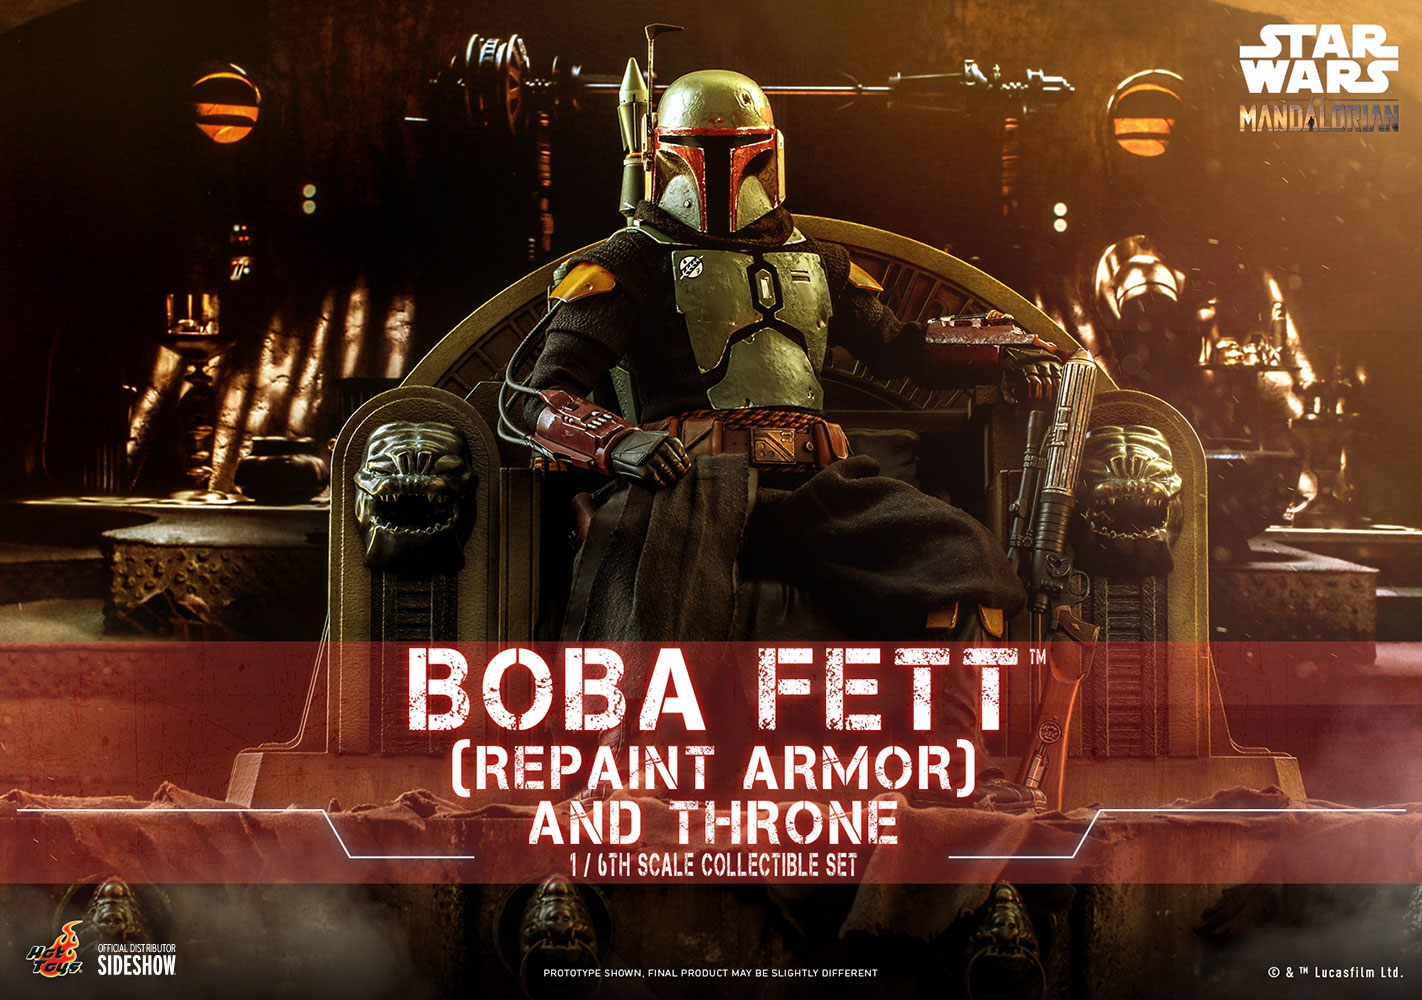 boba-fett-repaint-armor-special-edition-and-throne_star-wars_gallery_60ee5299b3e6f.jpg